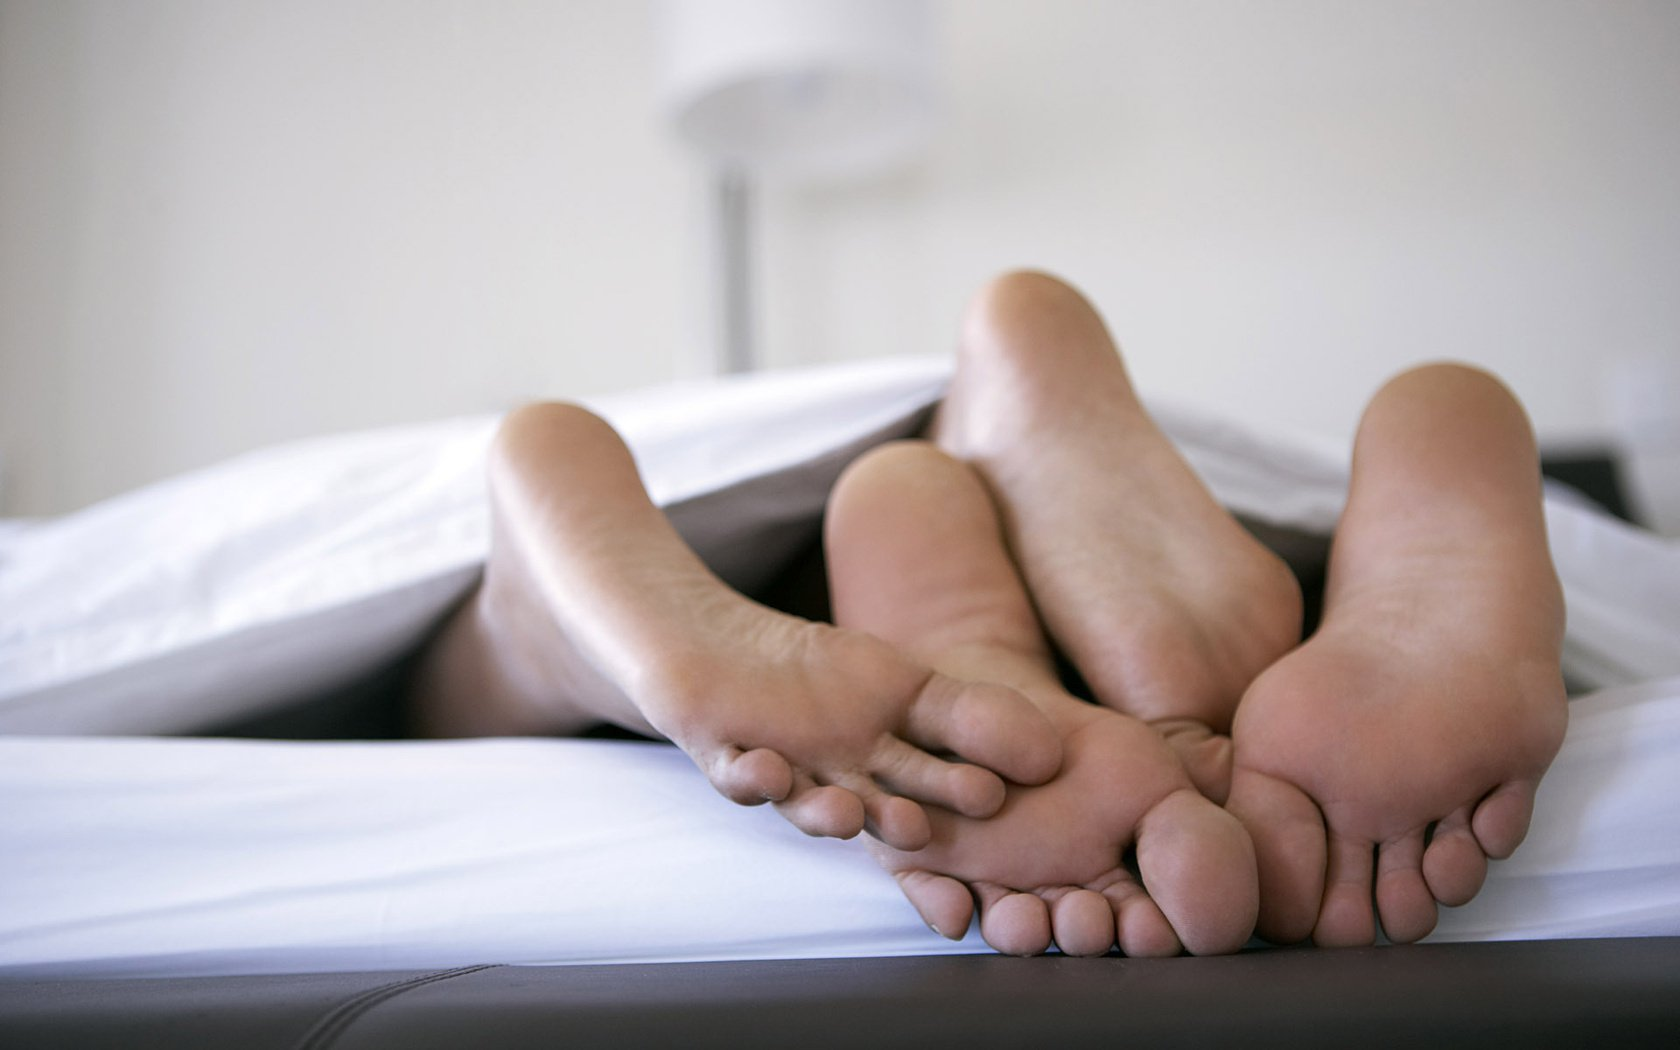 At what period if life does sex become fatal?